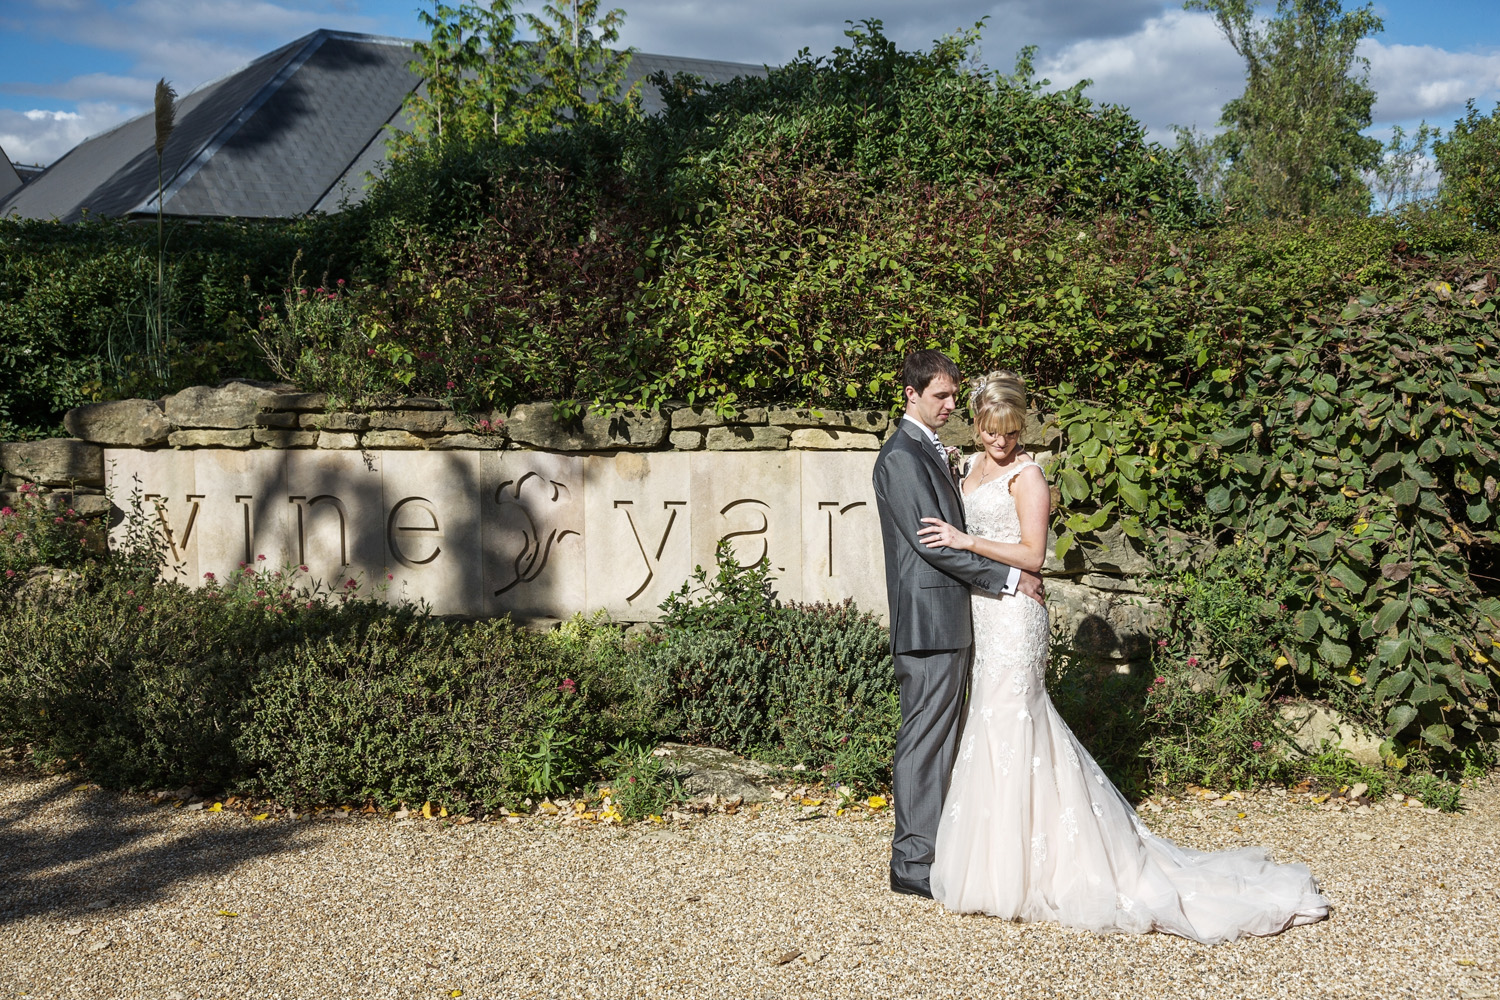 The_Vineyard_Hotel_Wedding_Photographer_Newbury_Berkshire_032.jpg